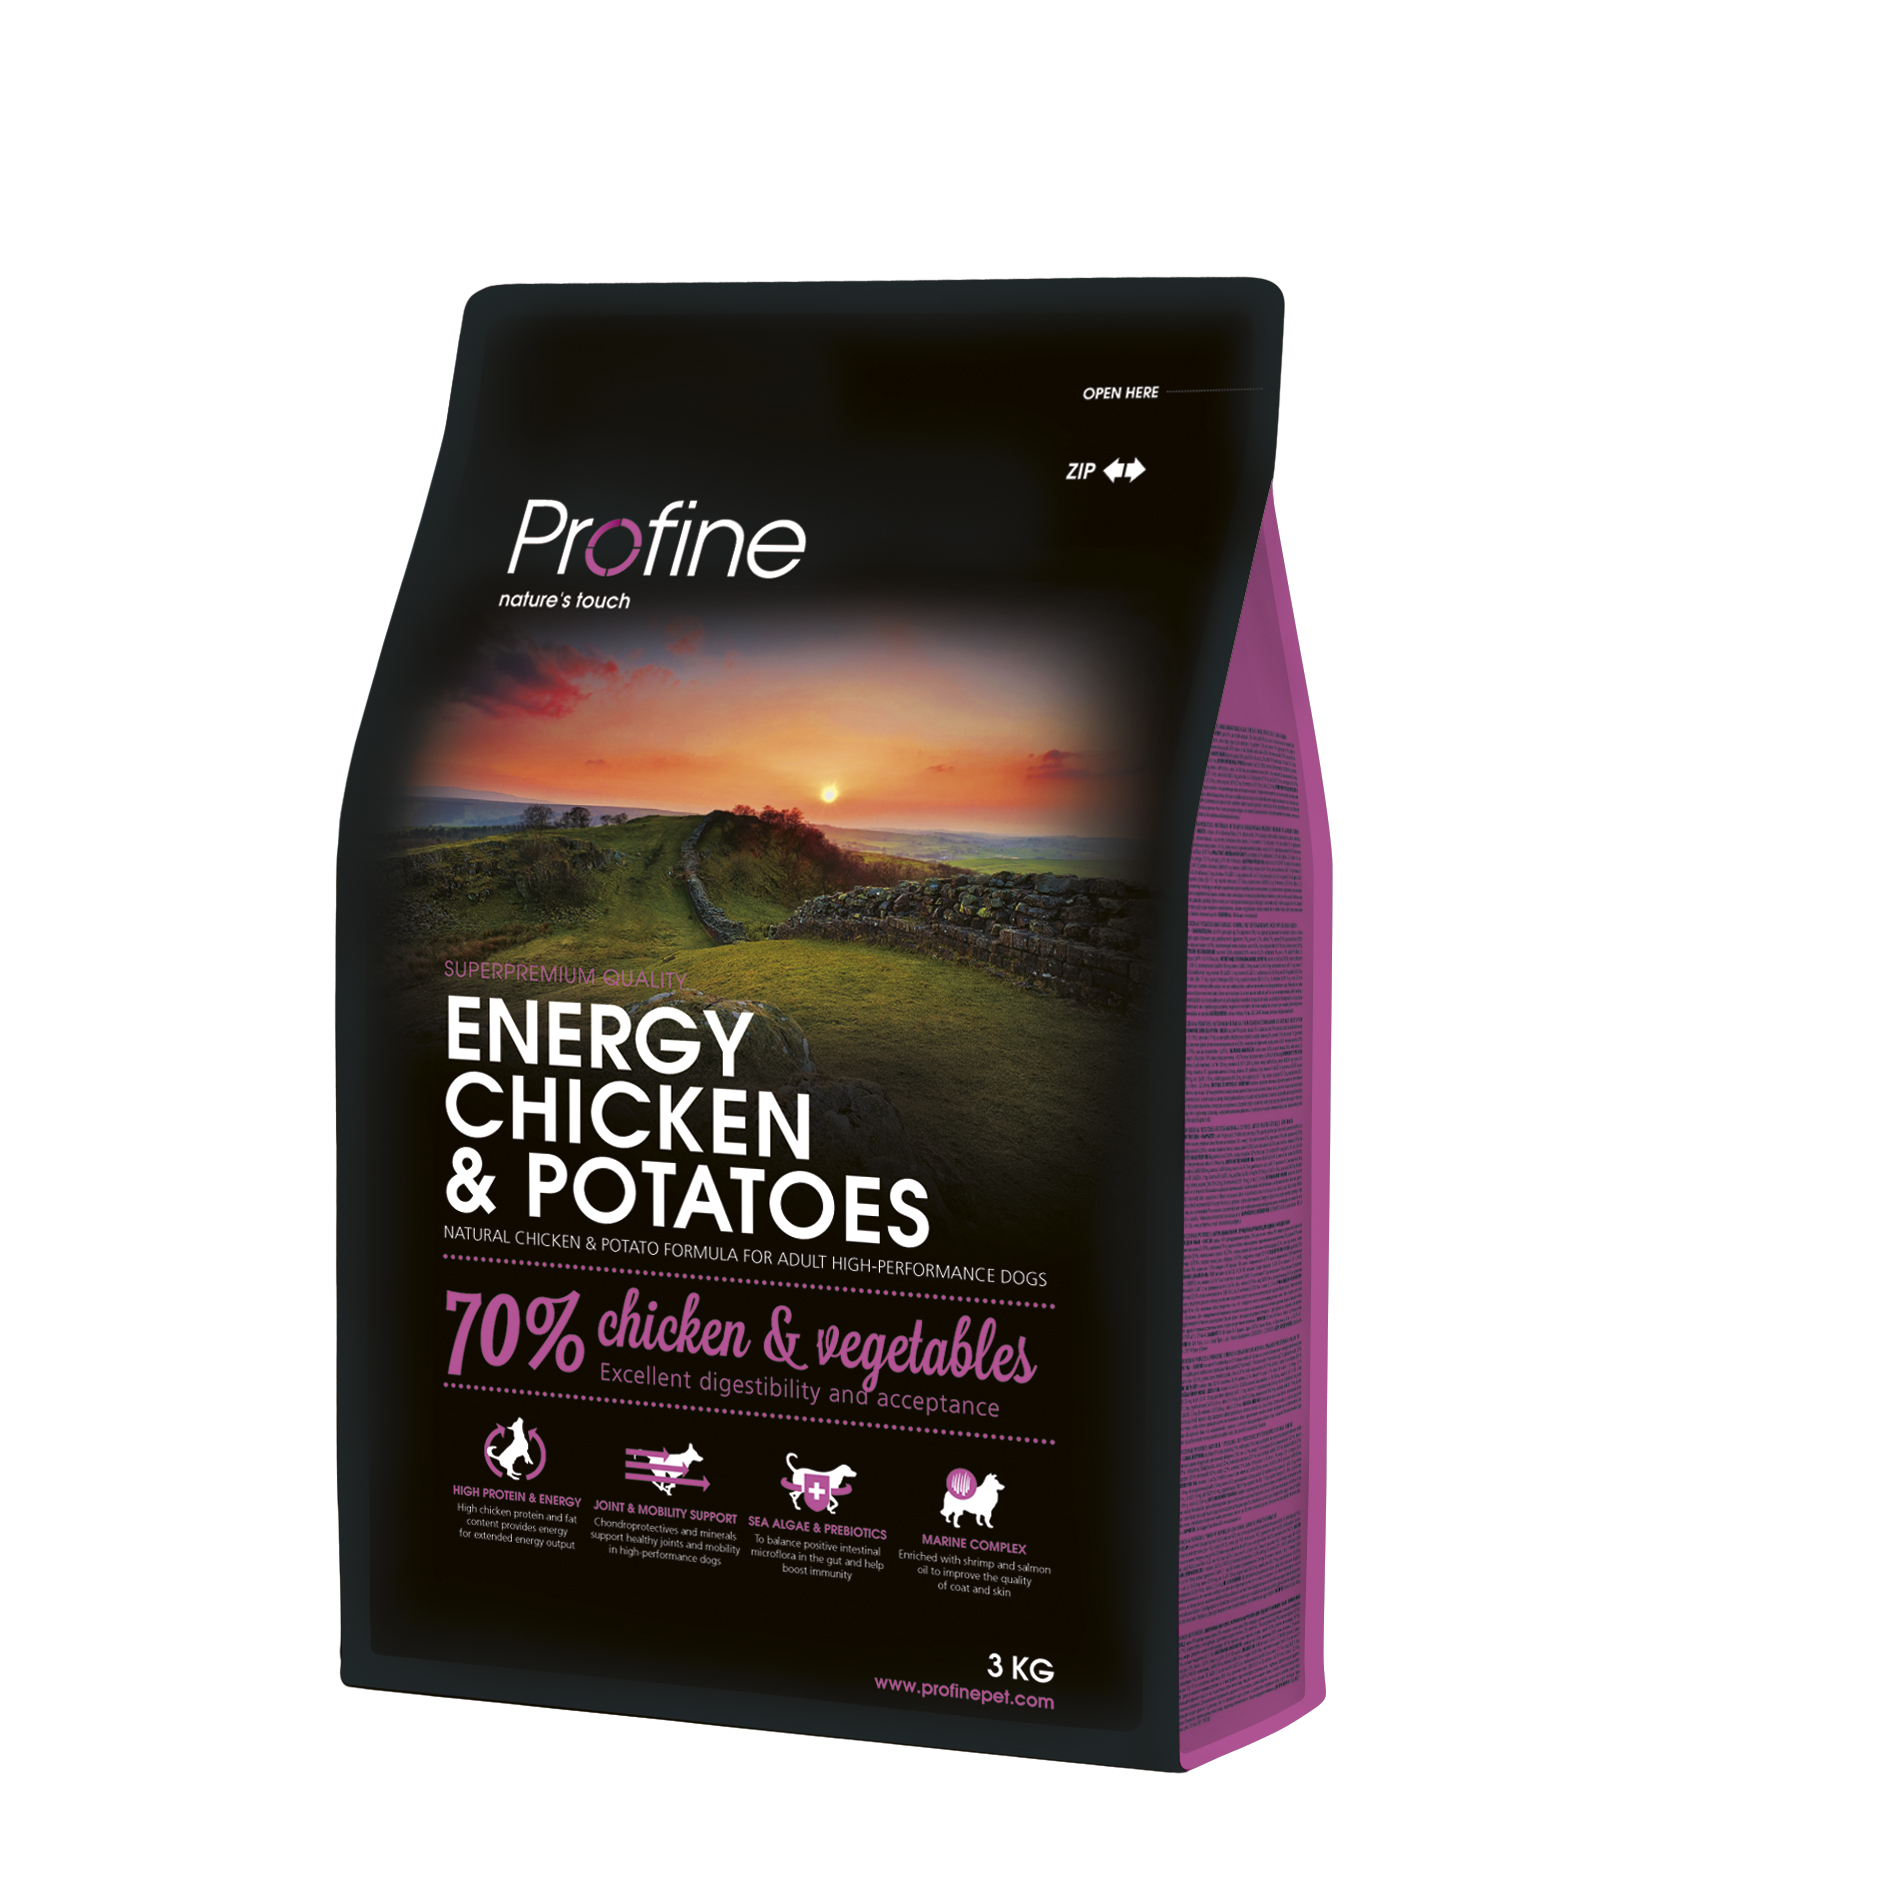 Profine Energy Chicken & Potatoes 3kg